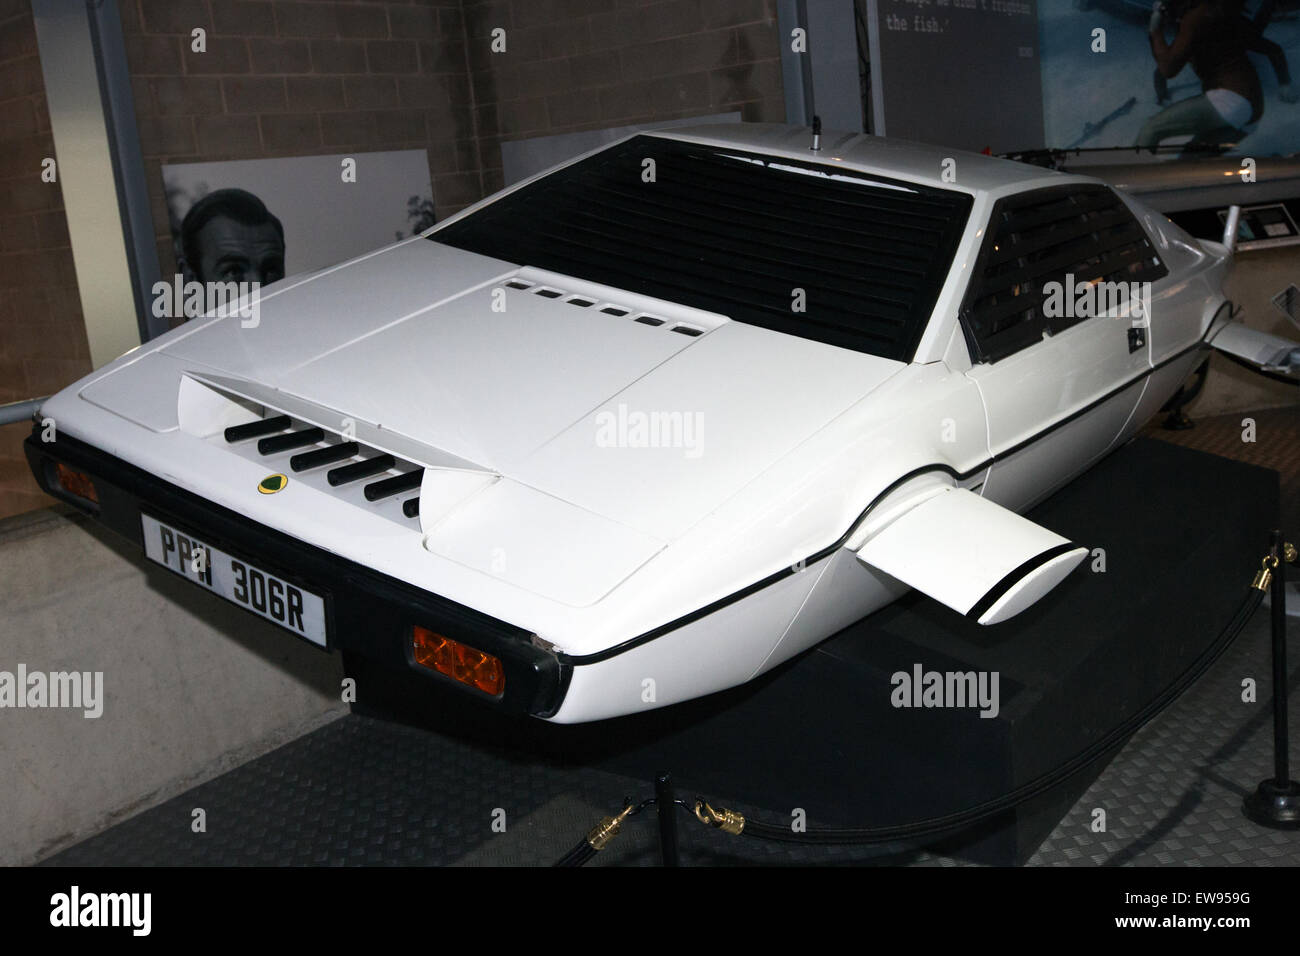 Lotus Esprit (The Spy Who Loved Me) front-left National Motor Museum, Beaulieu - Stock Image